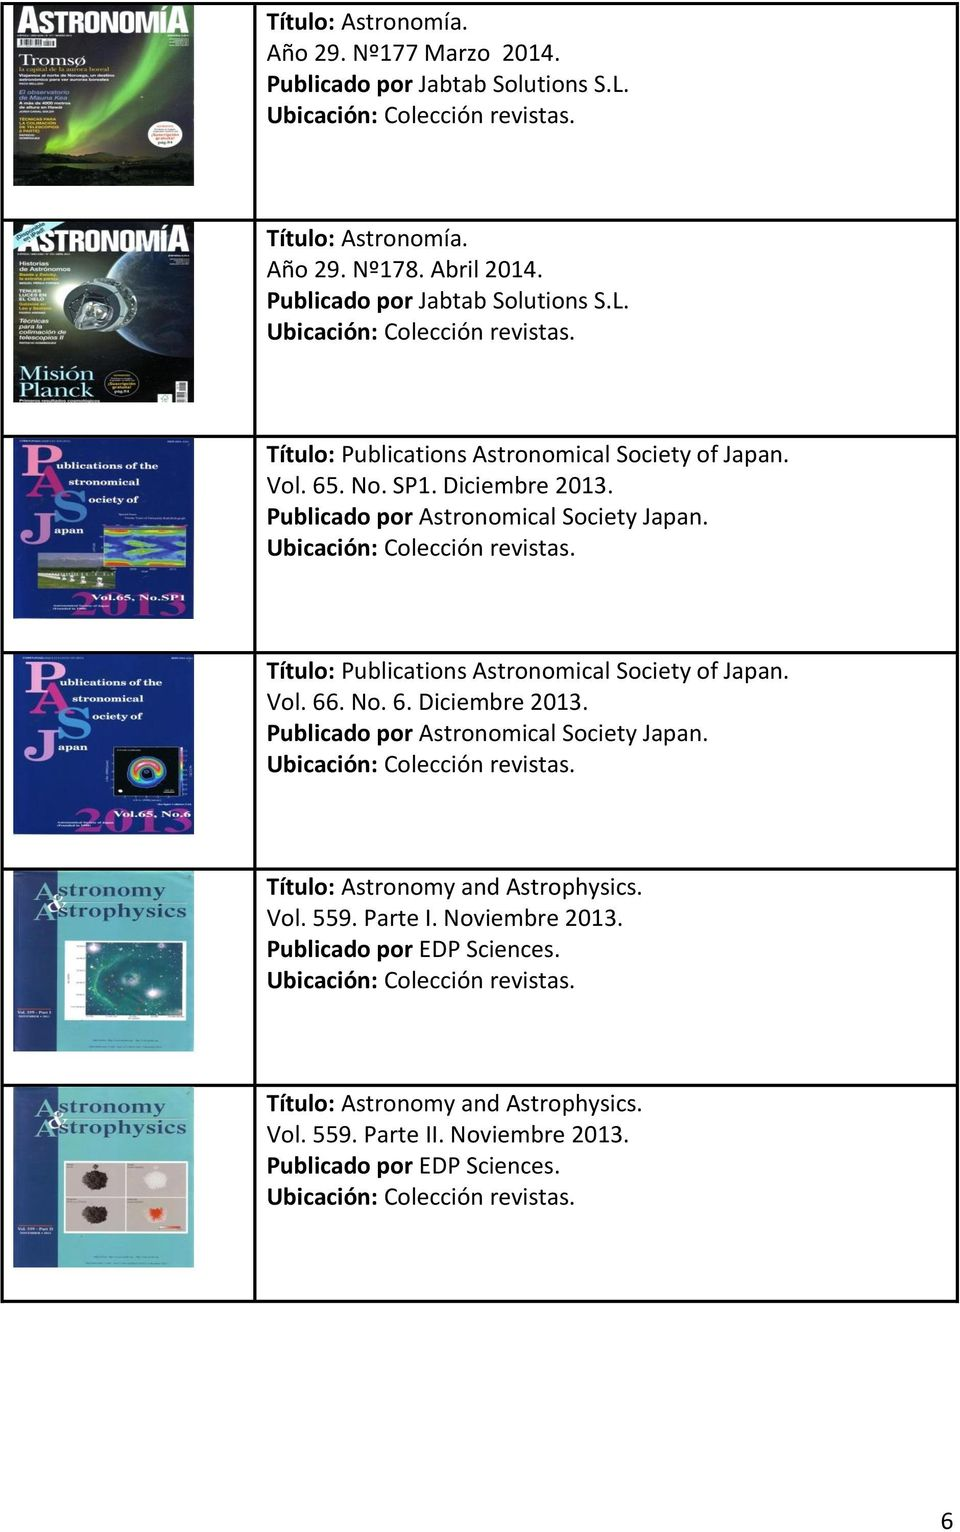 Publicado por Astronomical Society Japan. Título: Publications Astronomical Society of Japan. Vol. 66. No. 6. Diciembre 2013.